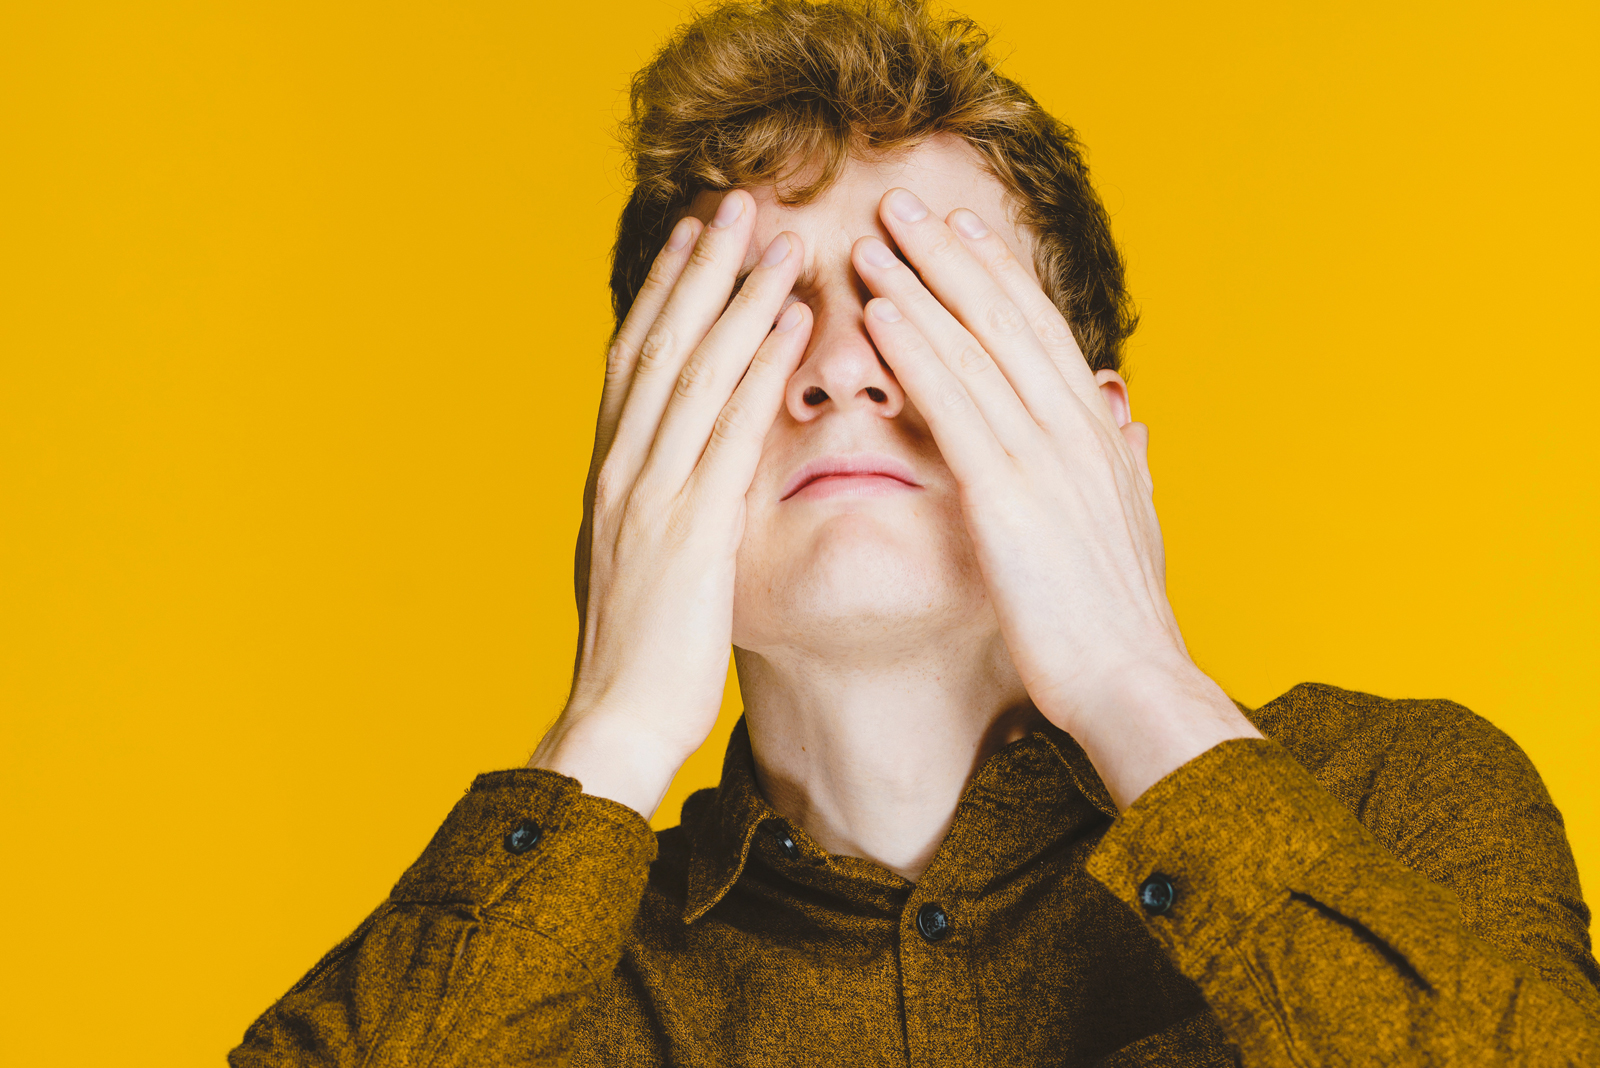 A photo of James Acaster hiding his face with his two hands